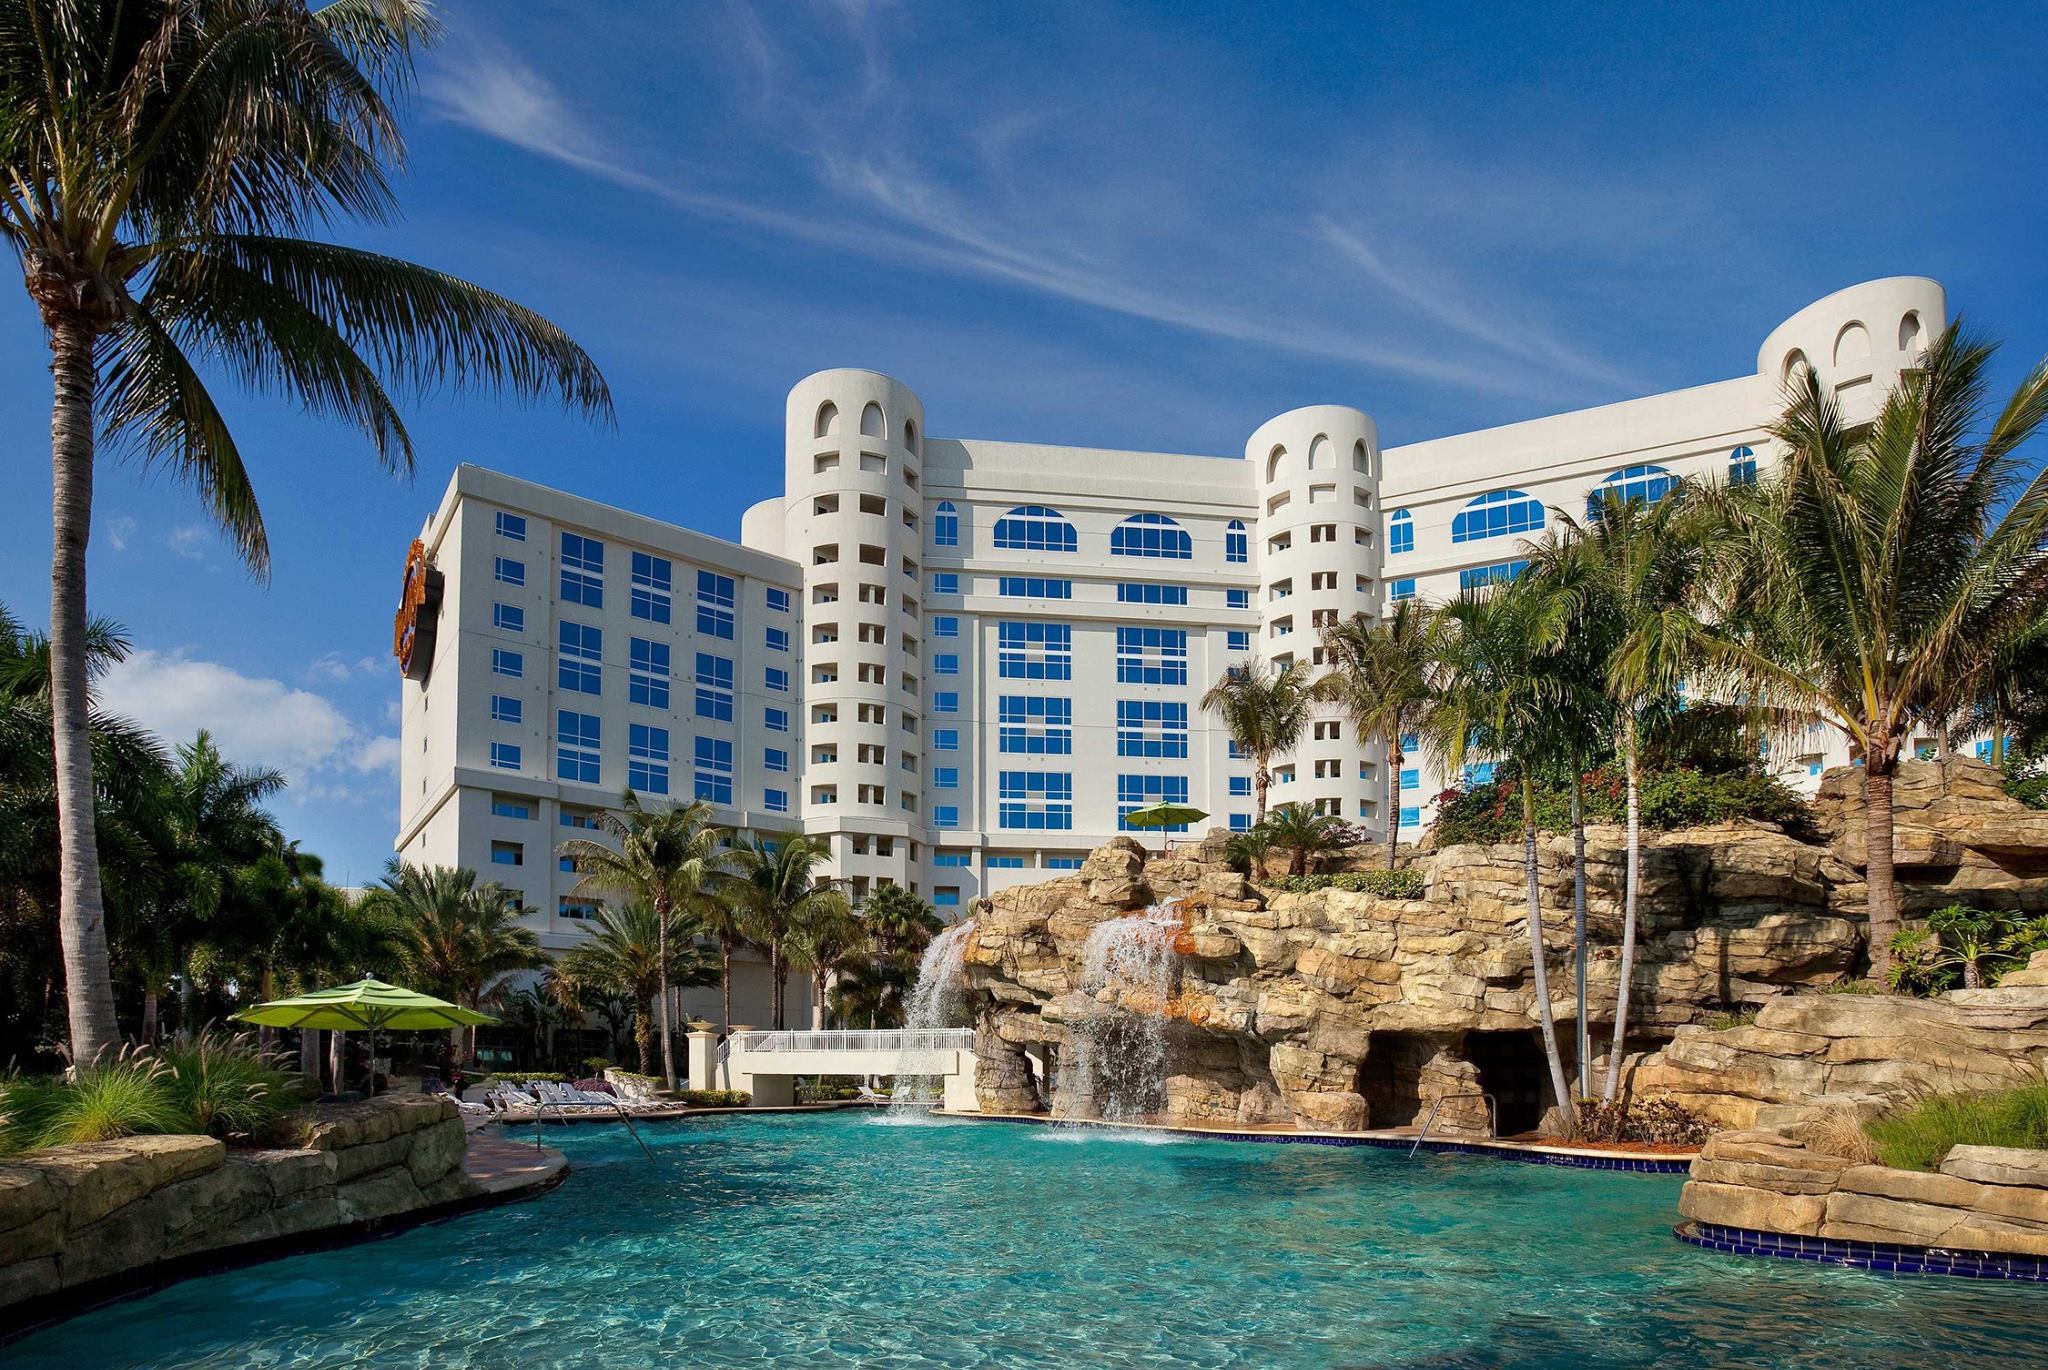 Seminole Tribe drops motion after gaming revenues published